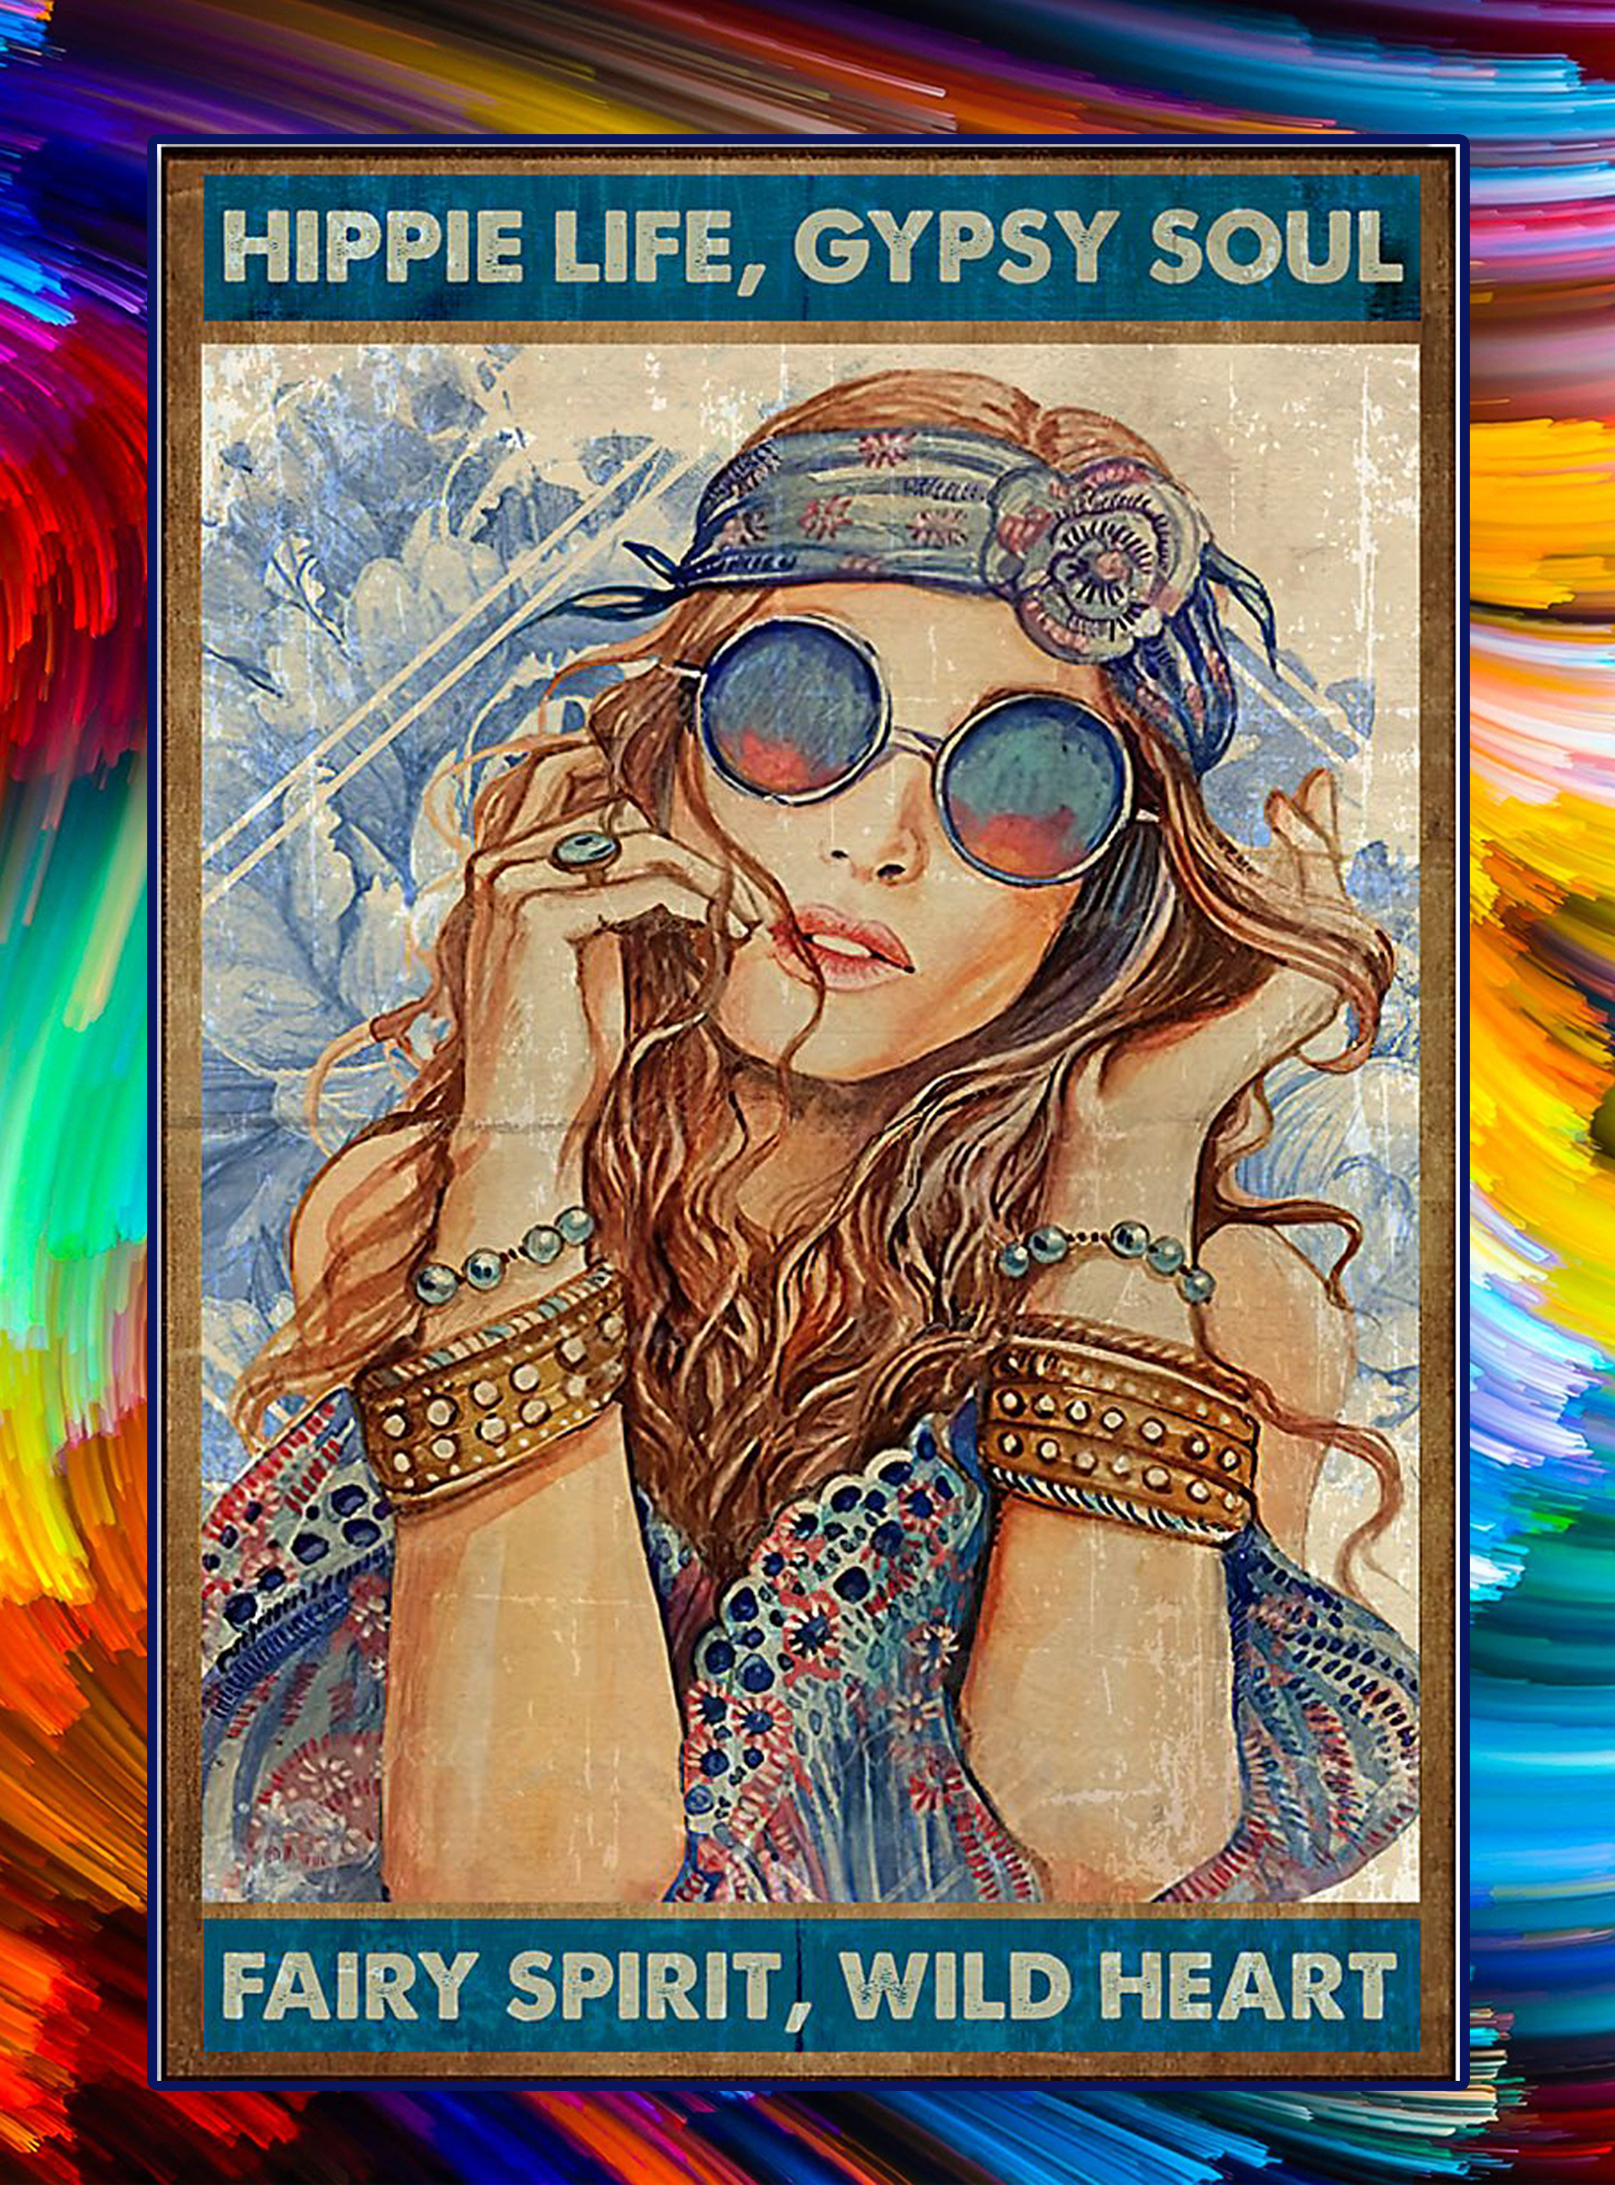 Girl Hippie life gypsy soul fairy spirit wild heart poster - A3